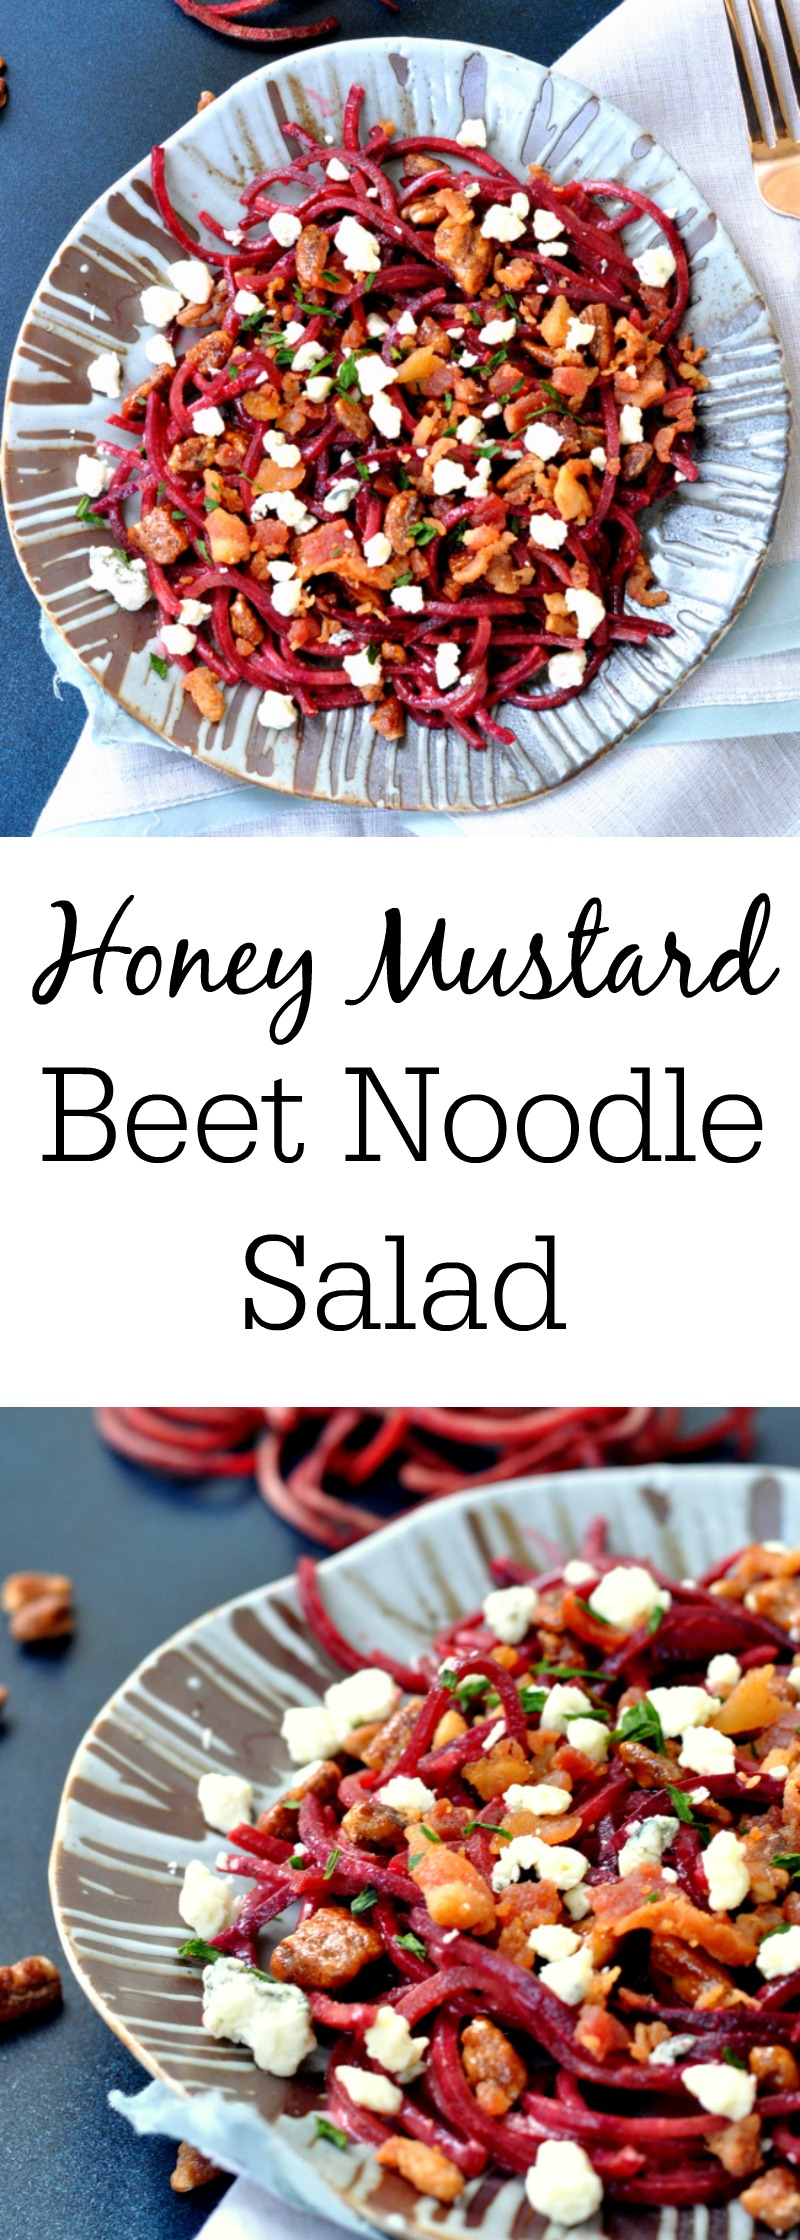 Honey Mustard Beet Noodle Salad